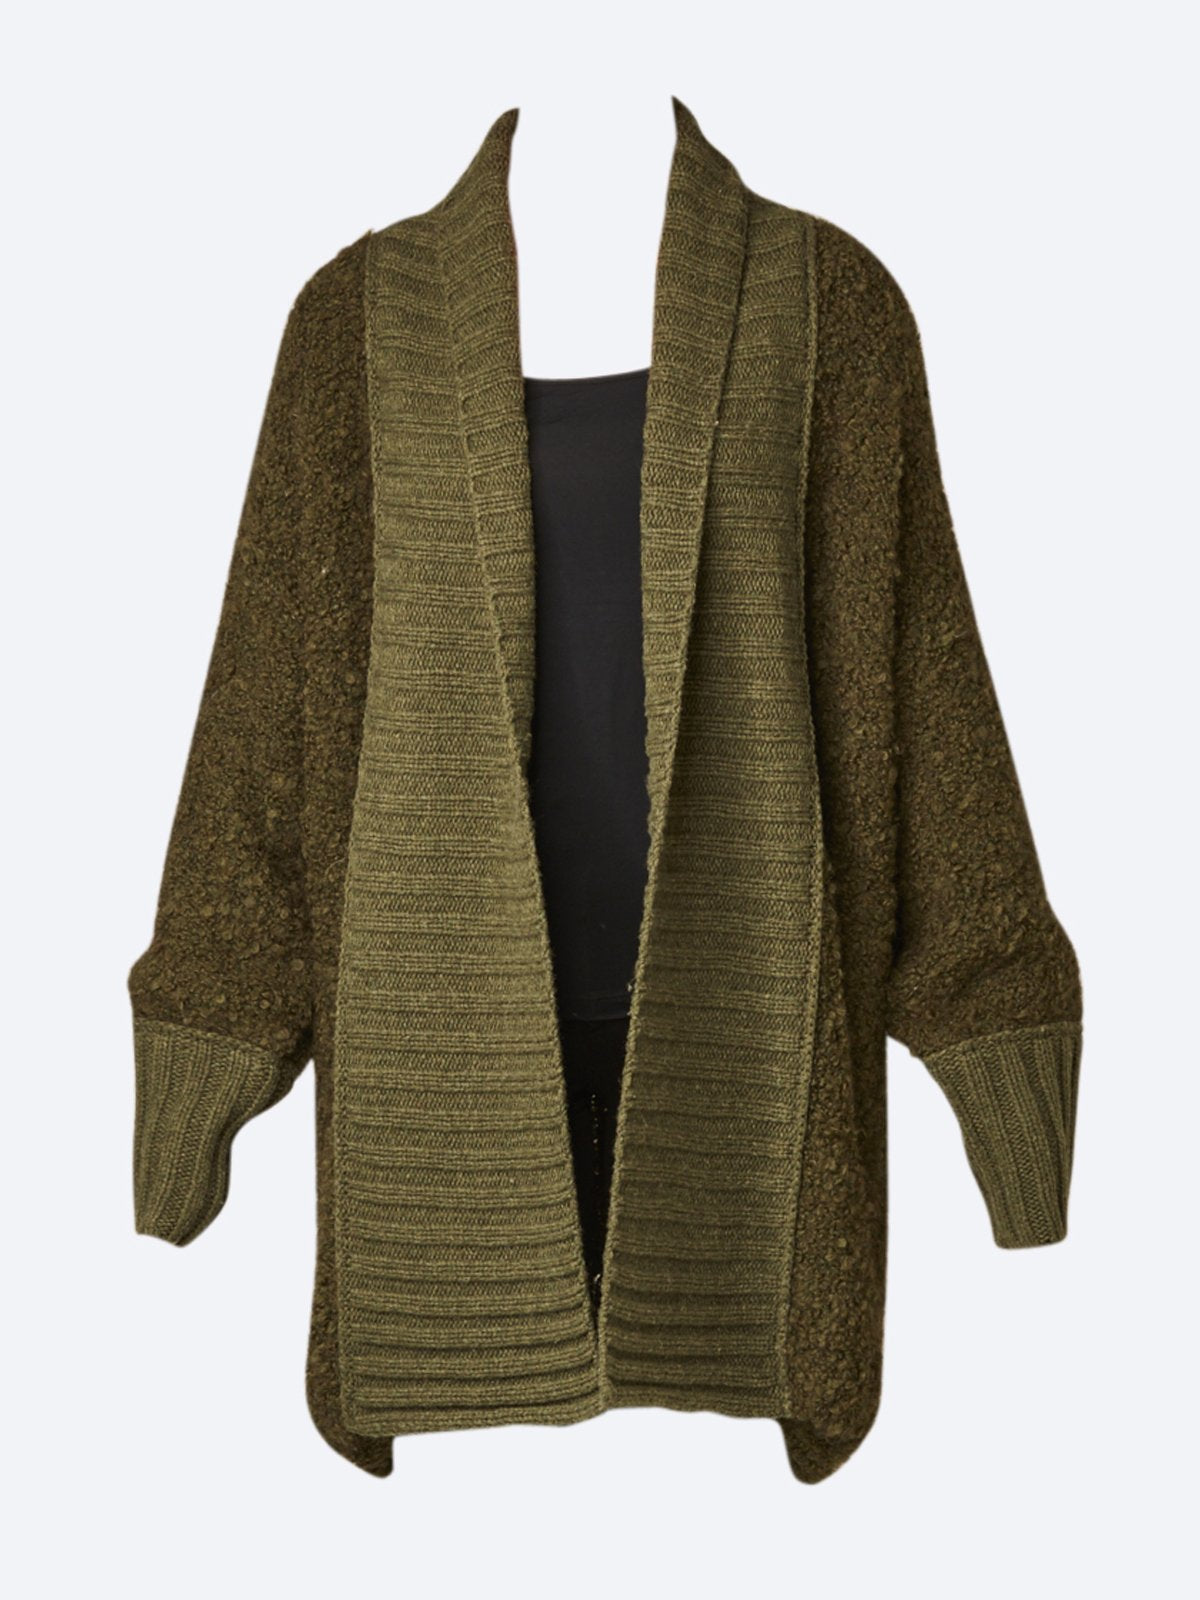 Yeltuor - ZAKET AND PLOVER - Knitwear - ZAKET & PLOVER BOUCLE CARDI -  -